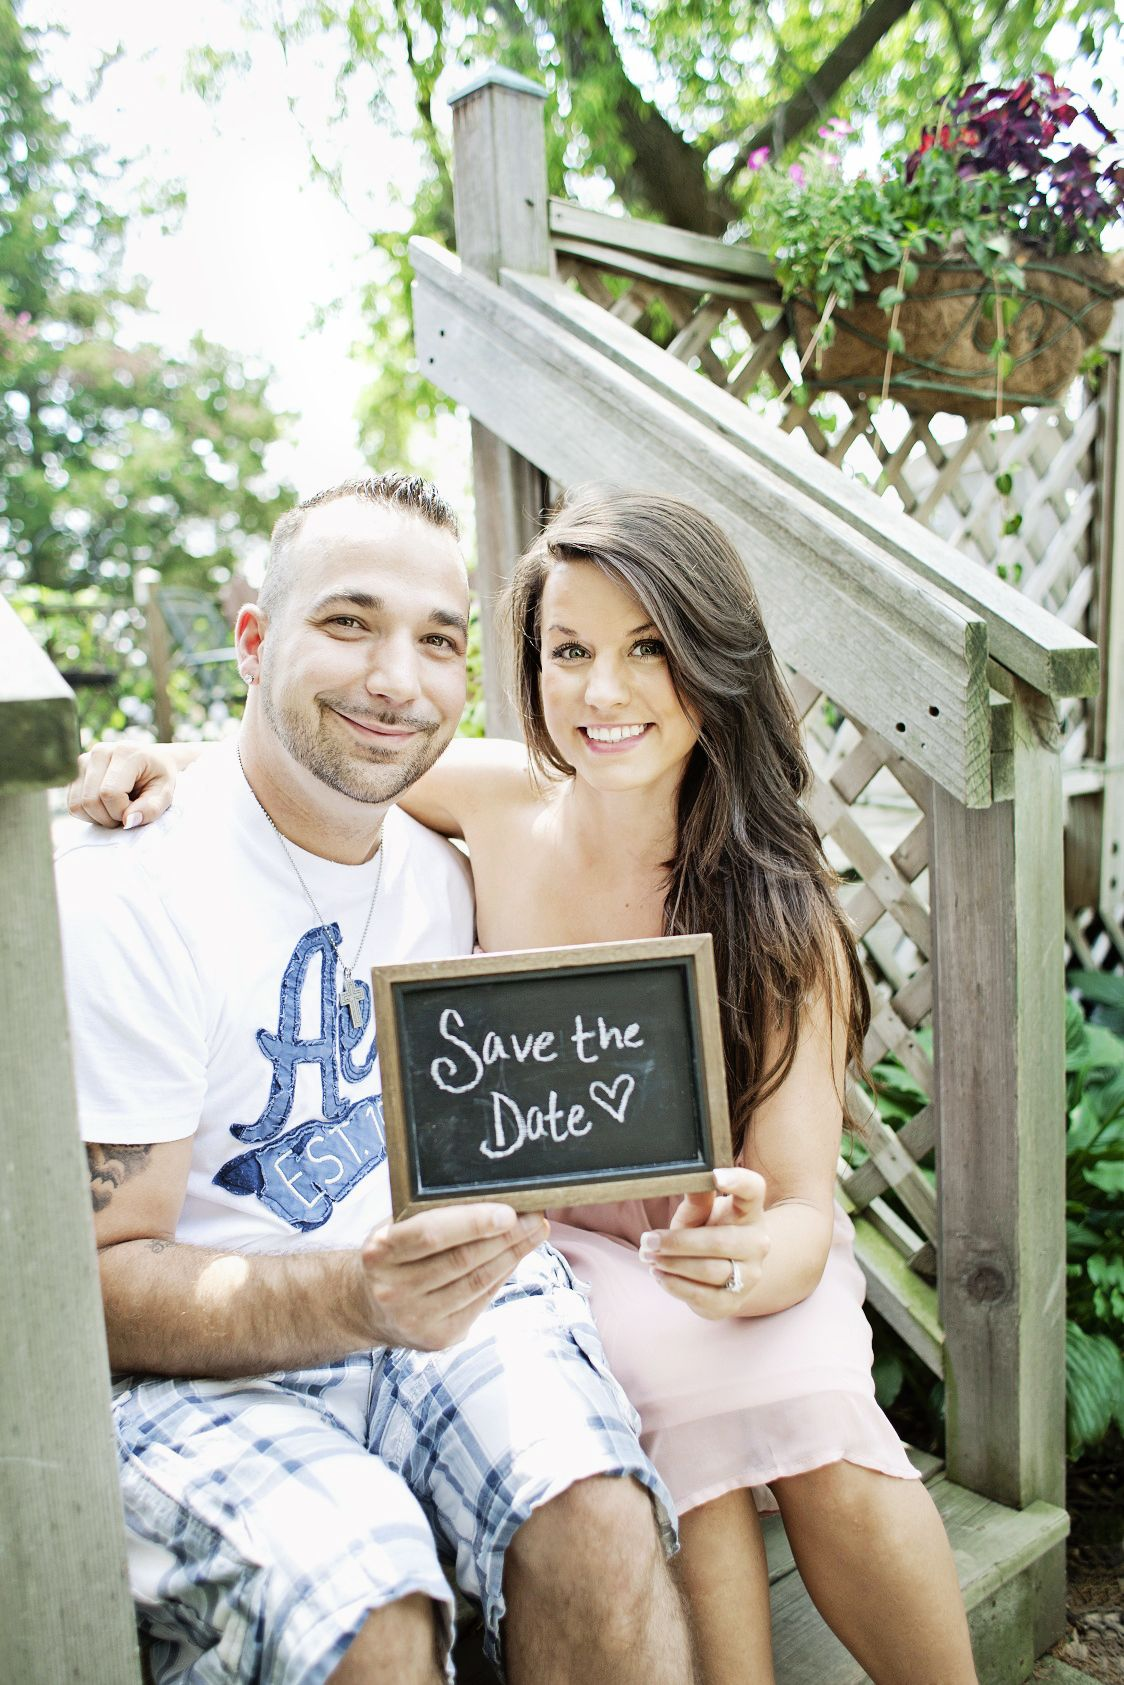 Save The Date w. chalkboard!  http://www.vbphotomn.com/  ©Veronica Barnes Photography, 2012.